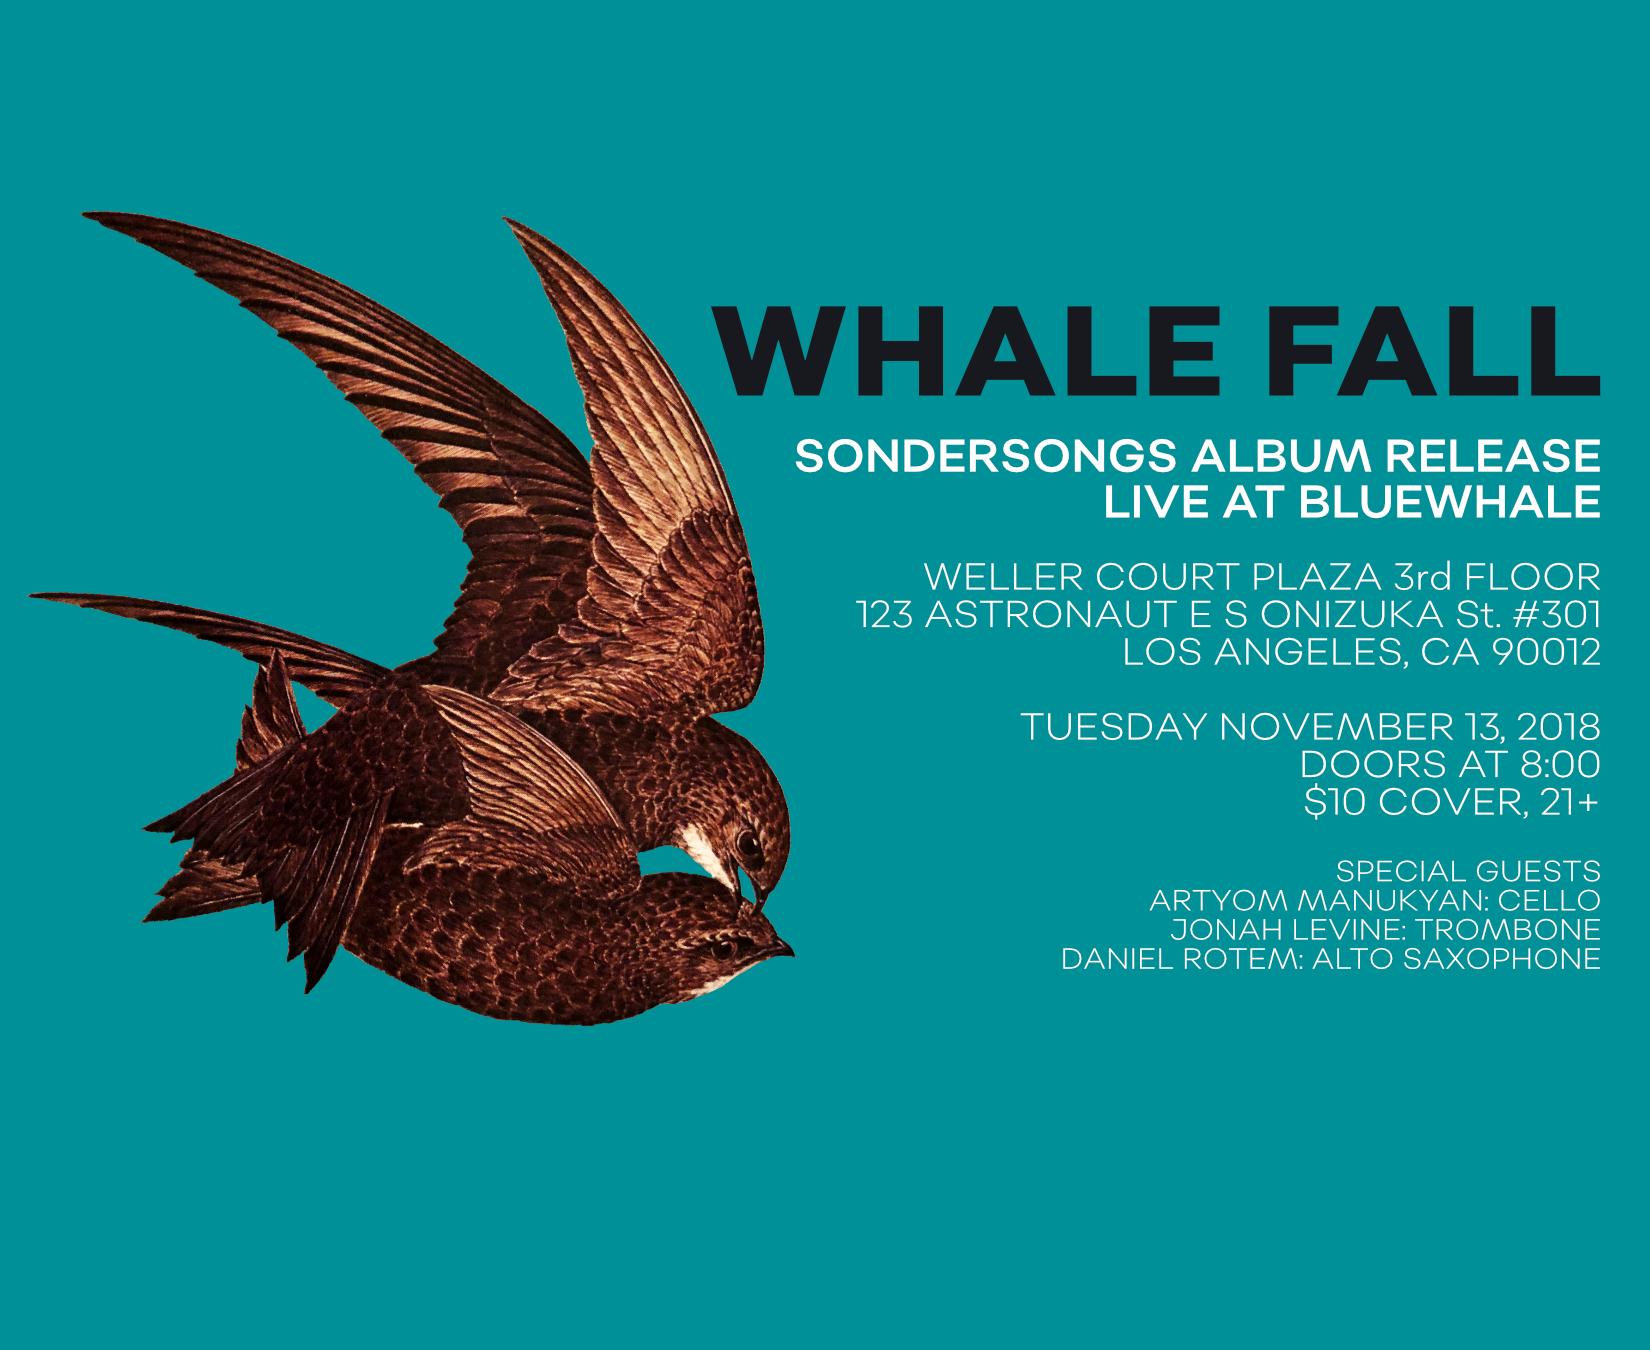 Sondersongs_bluewhale_11.13.2018_flyer_color.png